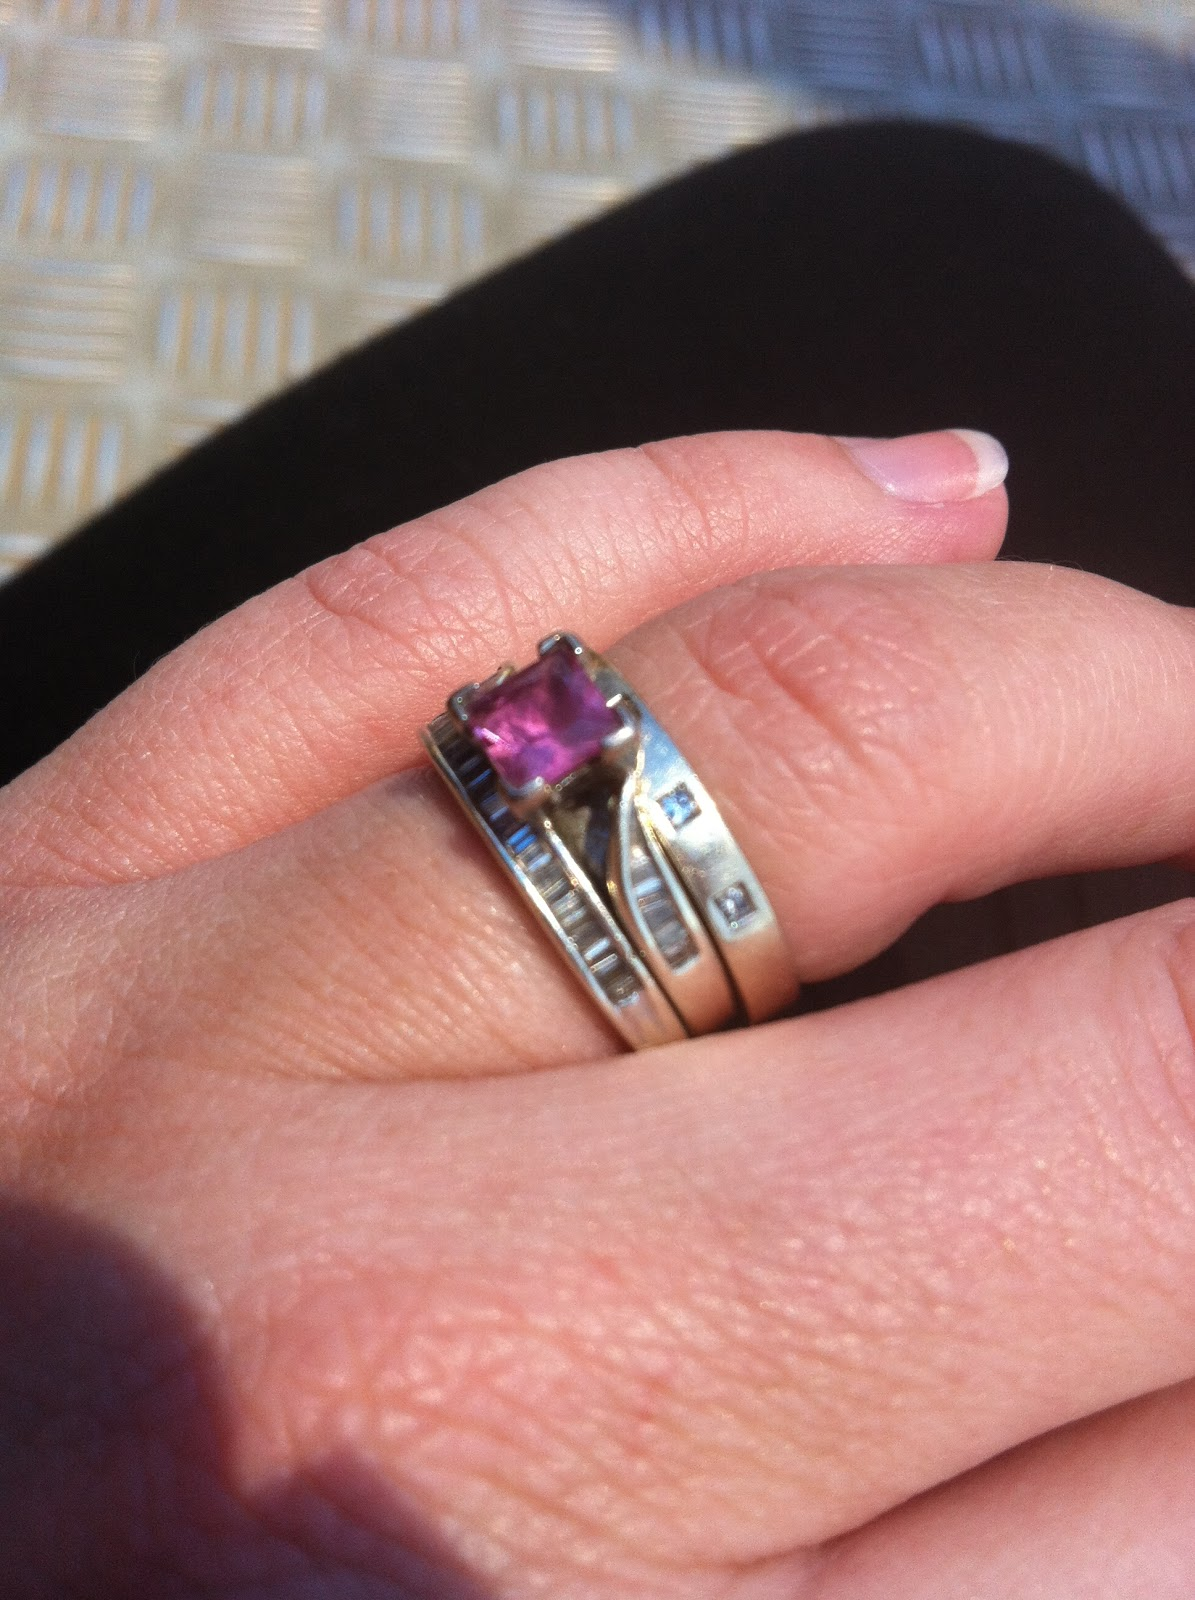 My Engagement Ring, It's Pink And Square And Just So Pretty!!! Gwen